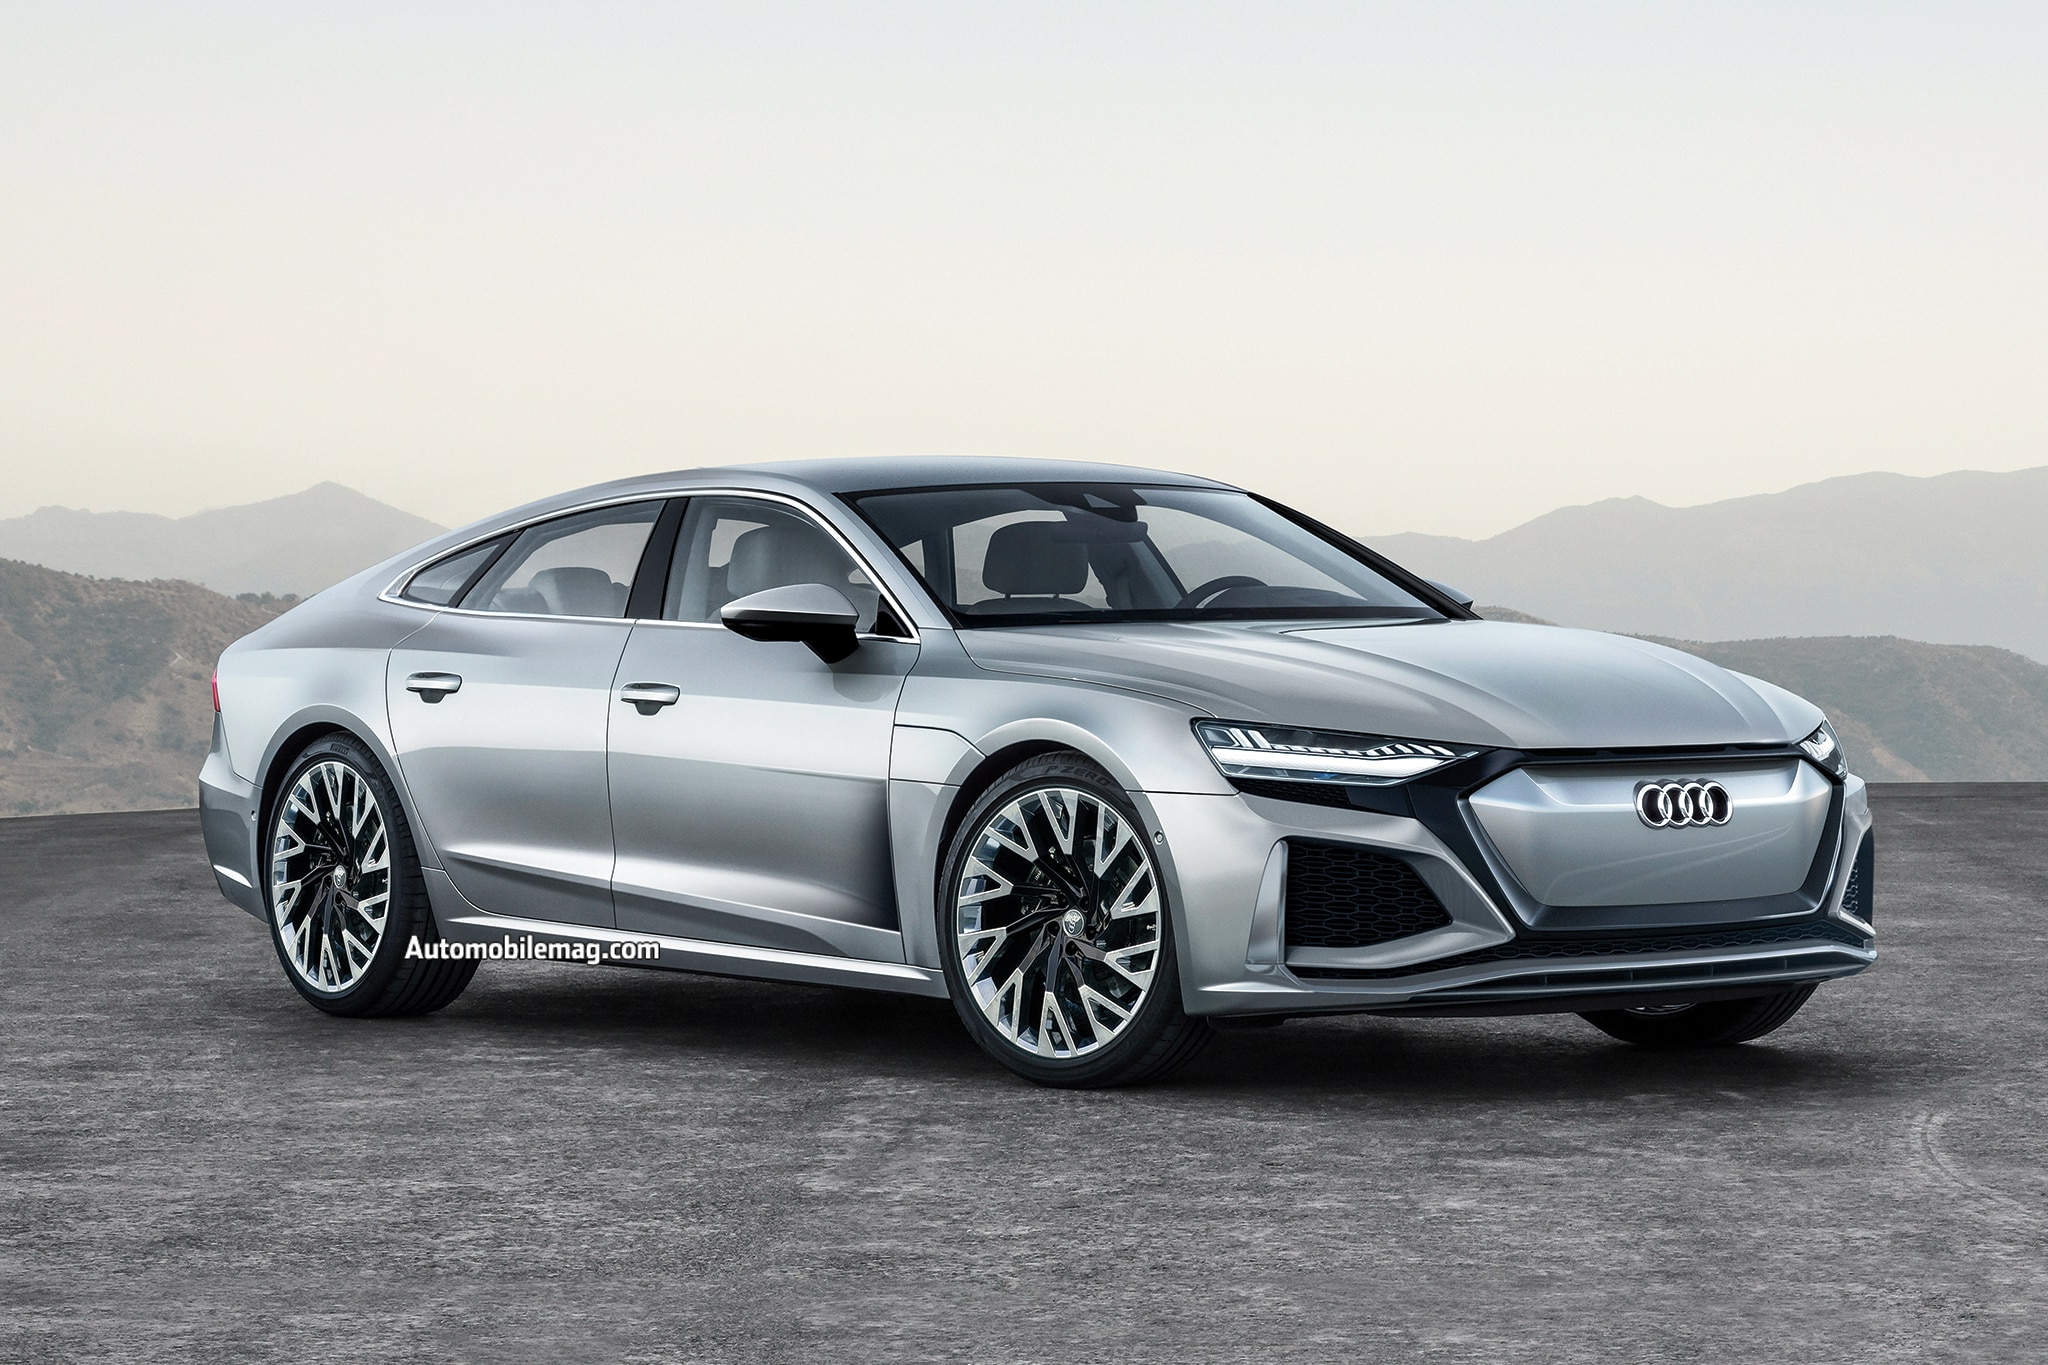 Concept Cars 2019: 2019 New And Future Cars: Audi